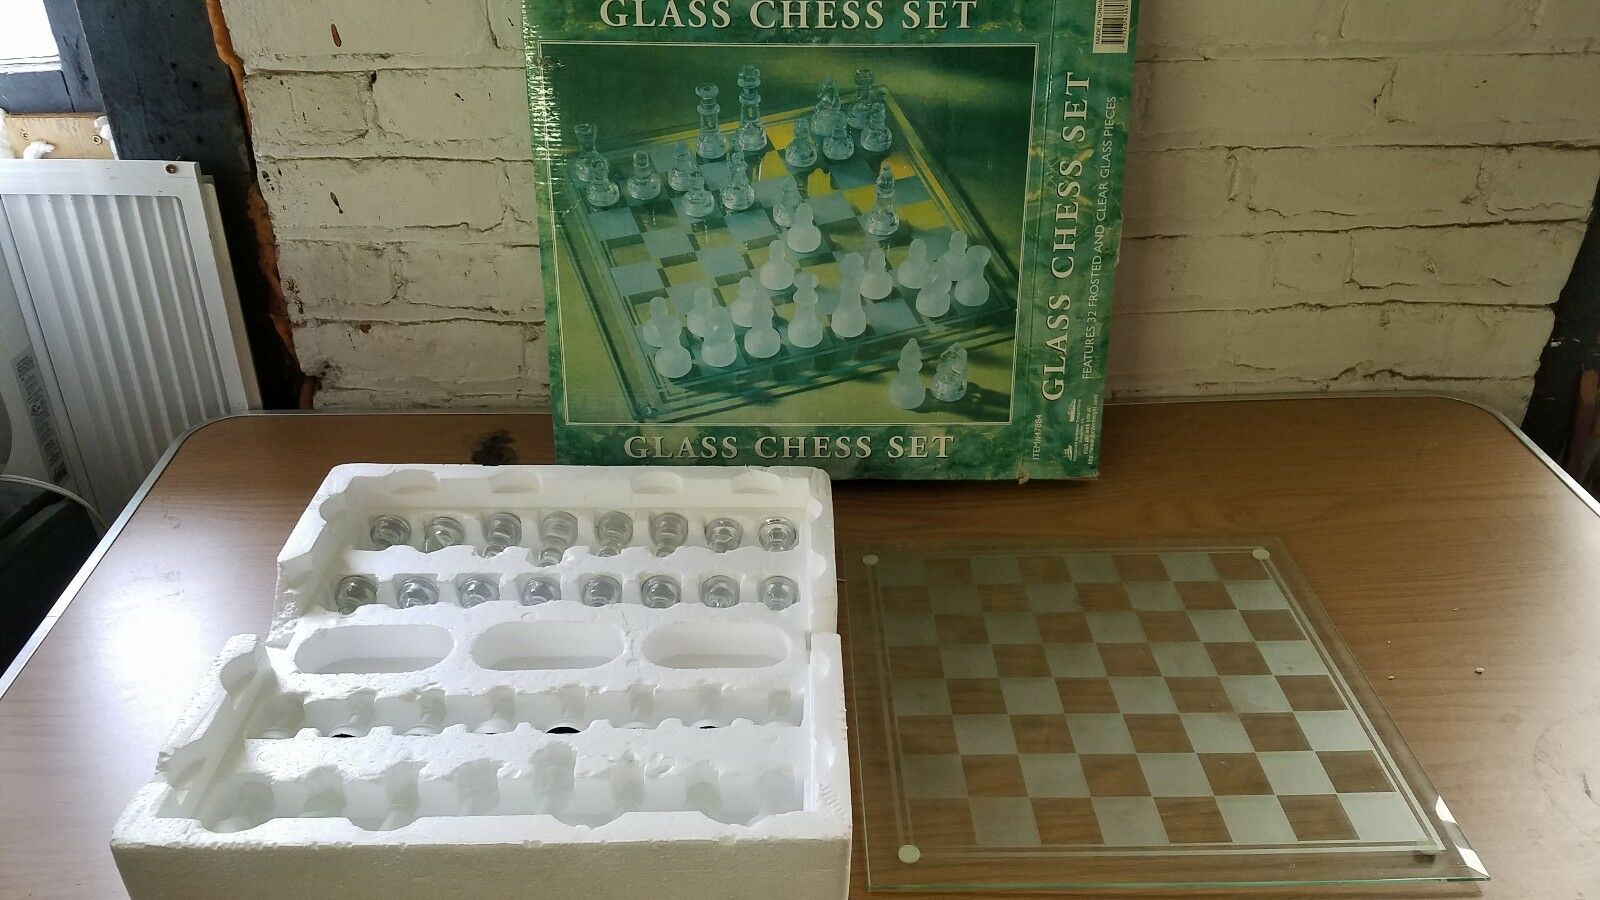 Glass Chess Set 32 Frosted & Clear Glass Pieces by Harbor Freight Tools COMPLETE